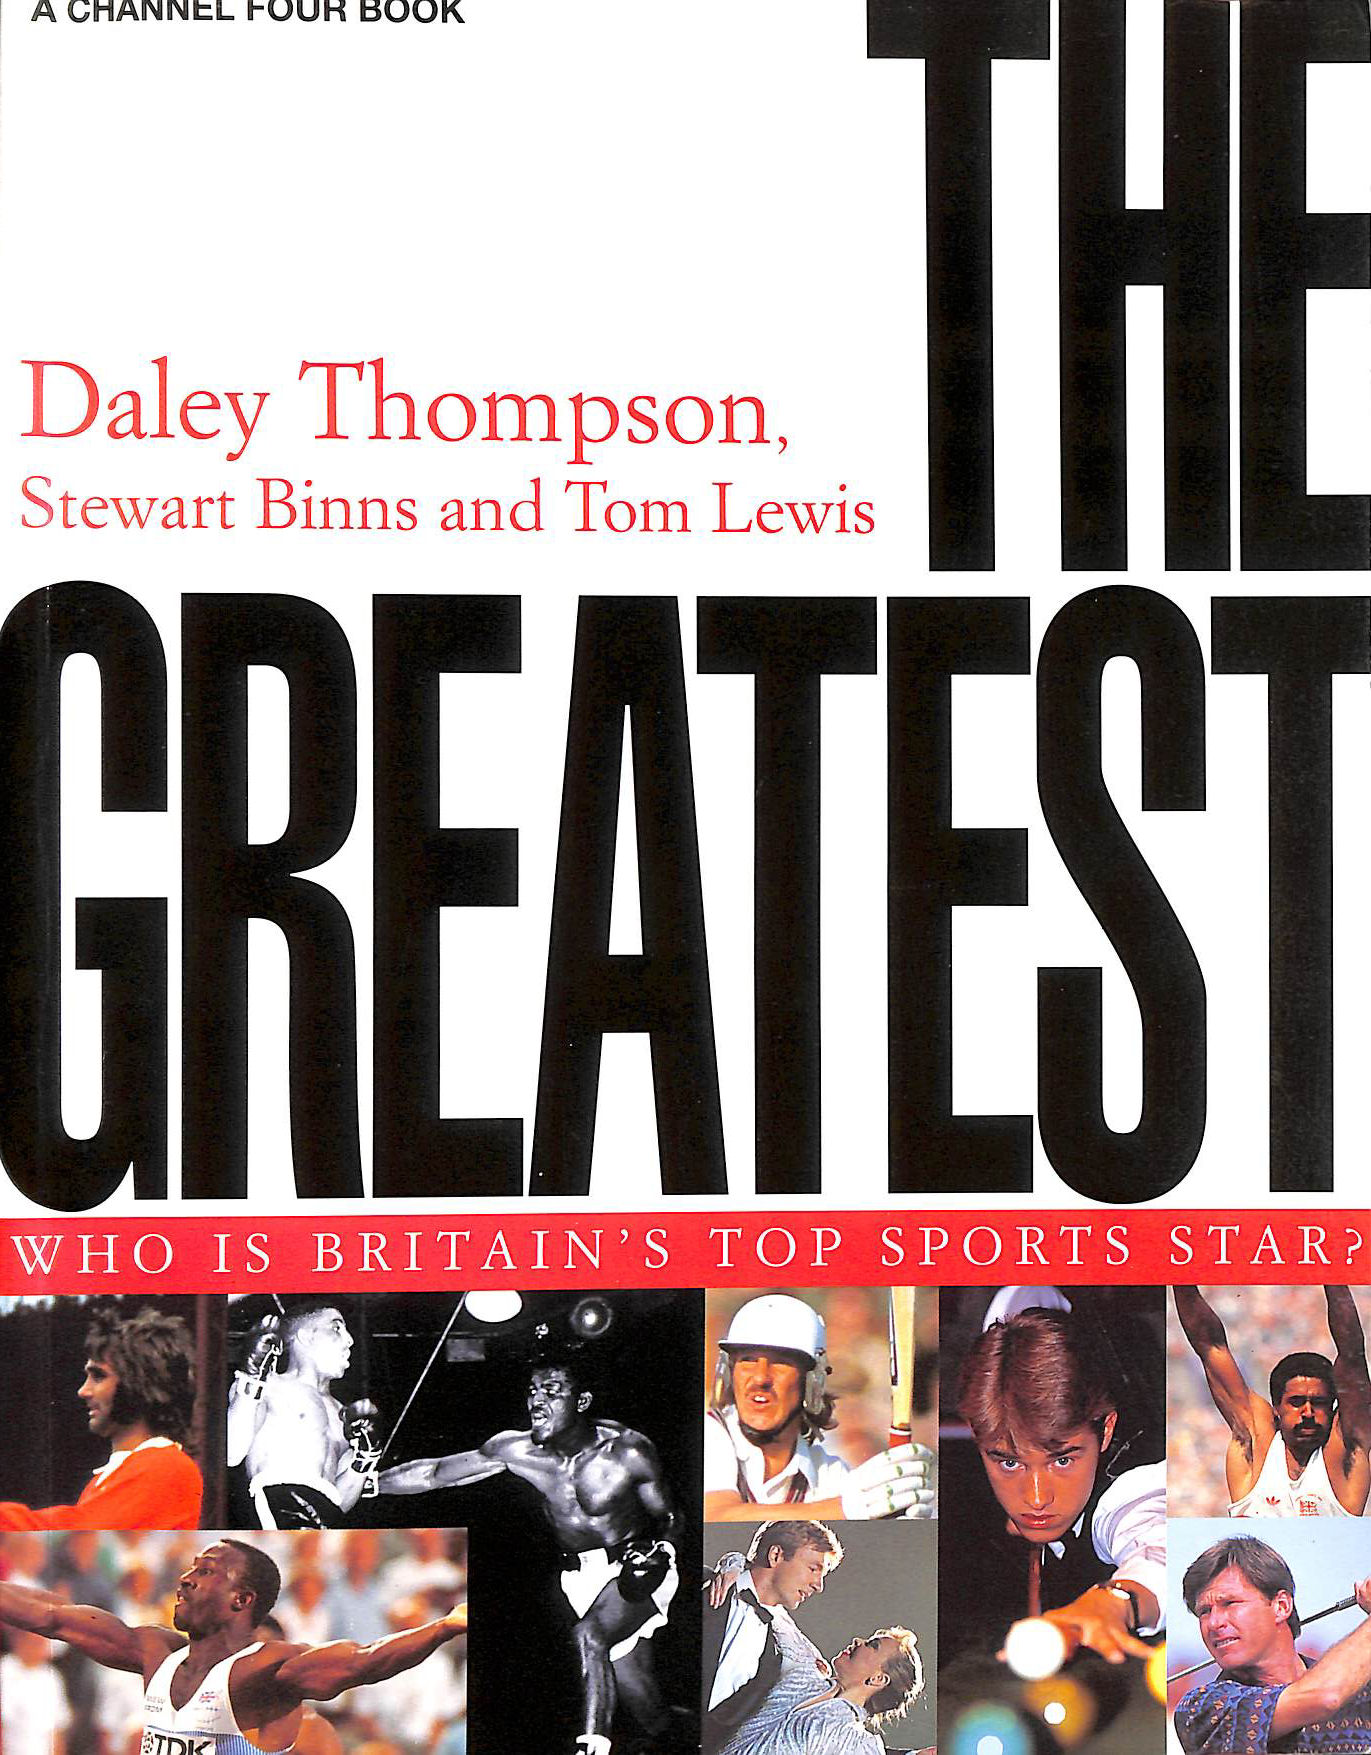 Image for The Greatest: Who is Britain's Top Sports Star? (A Channel Four book)